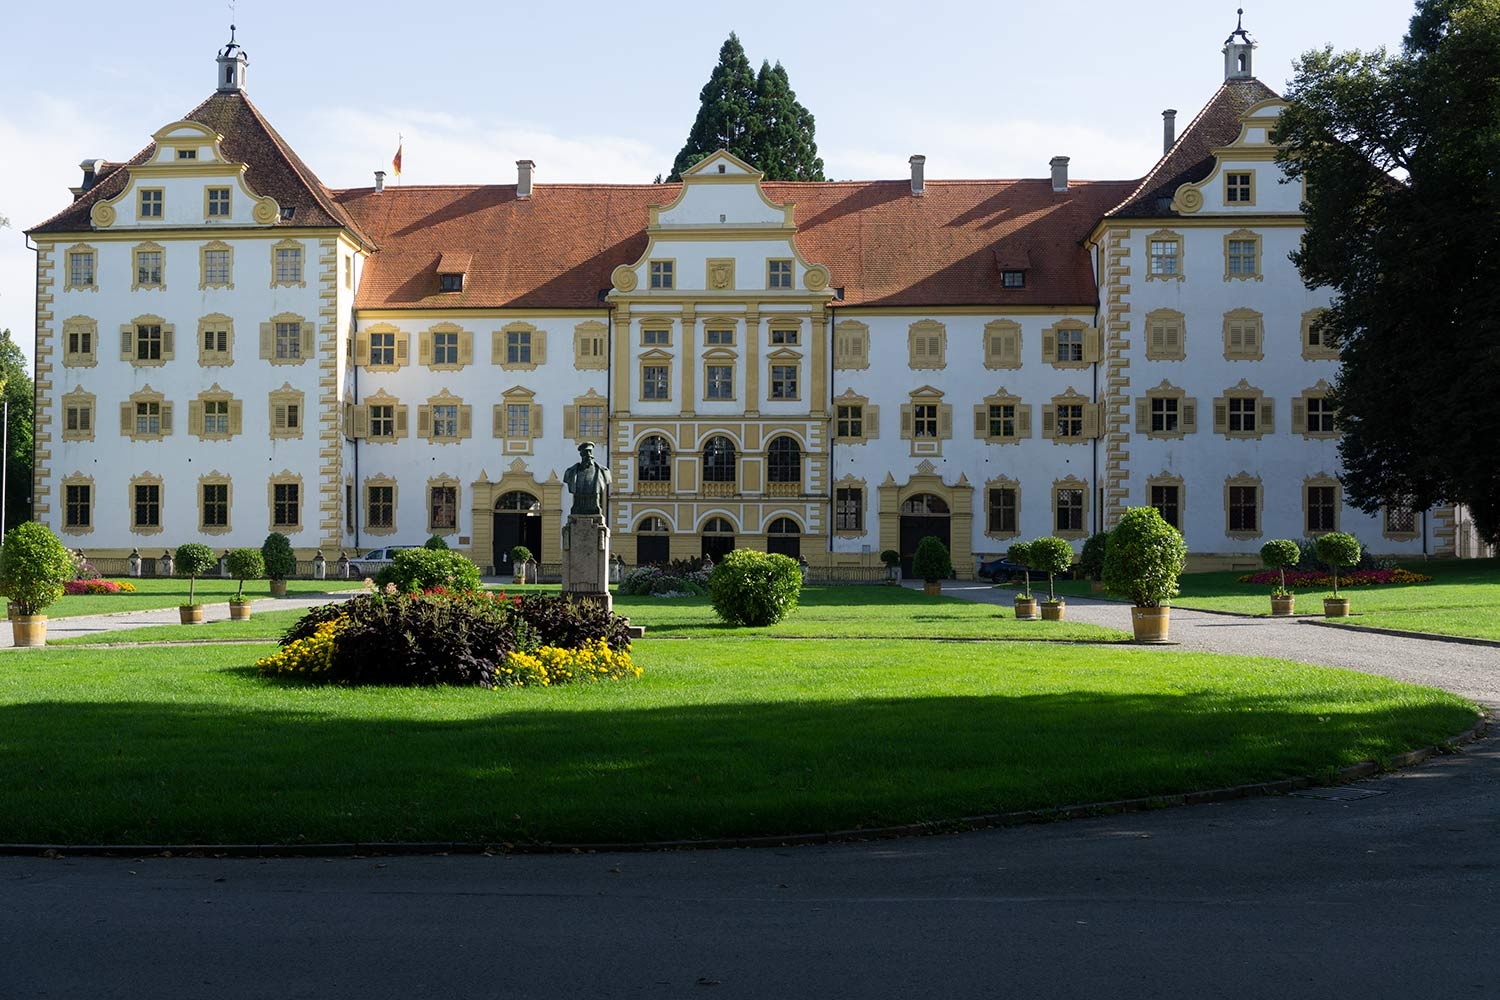 A palace in Salem, Germany.